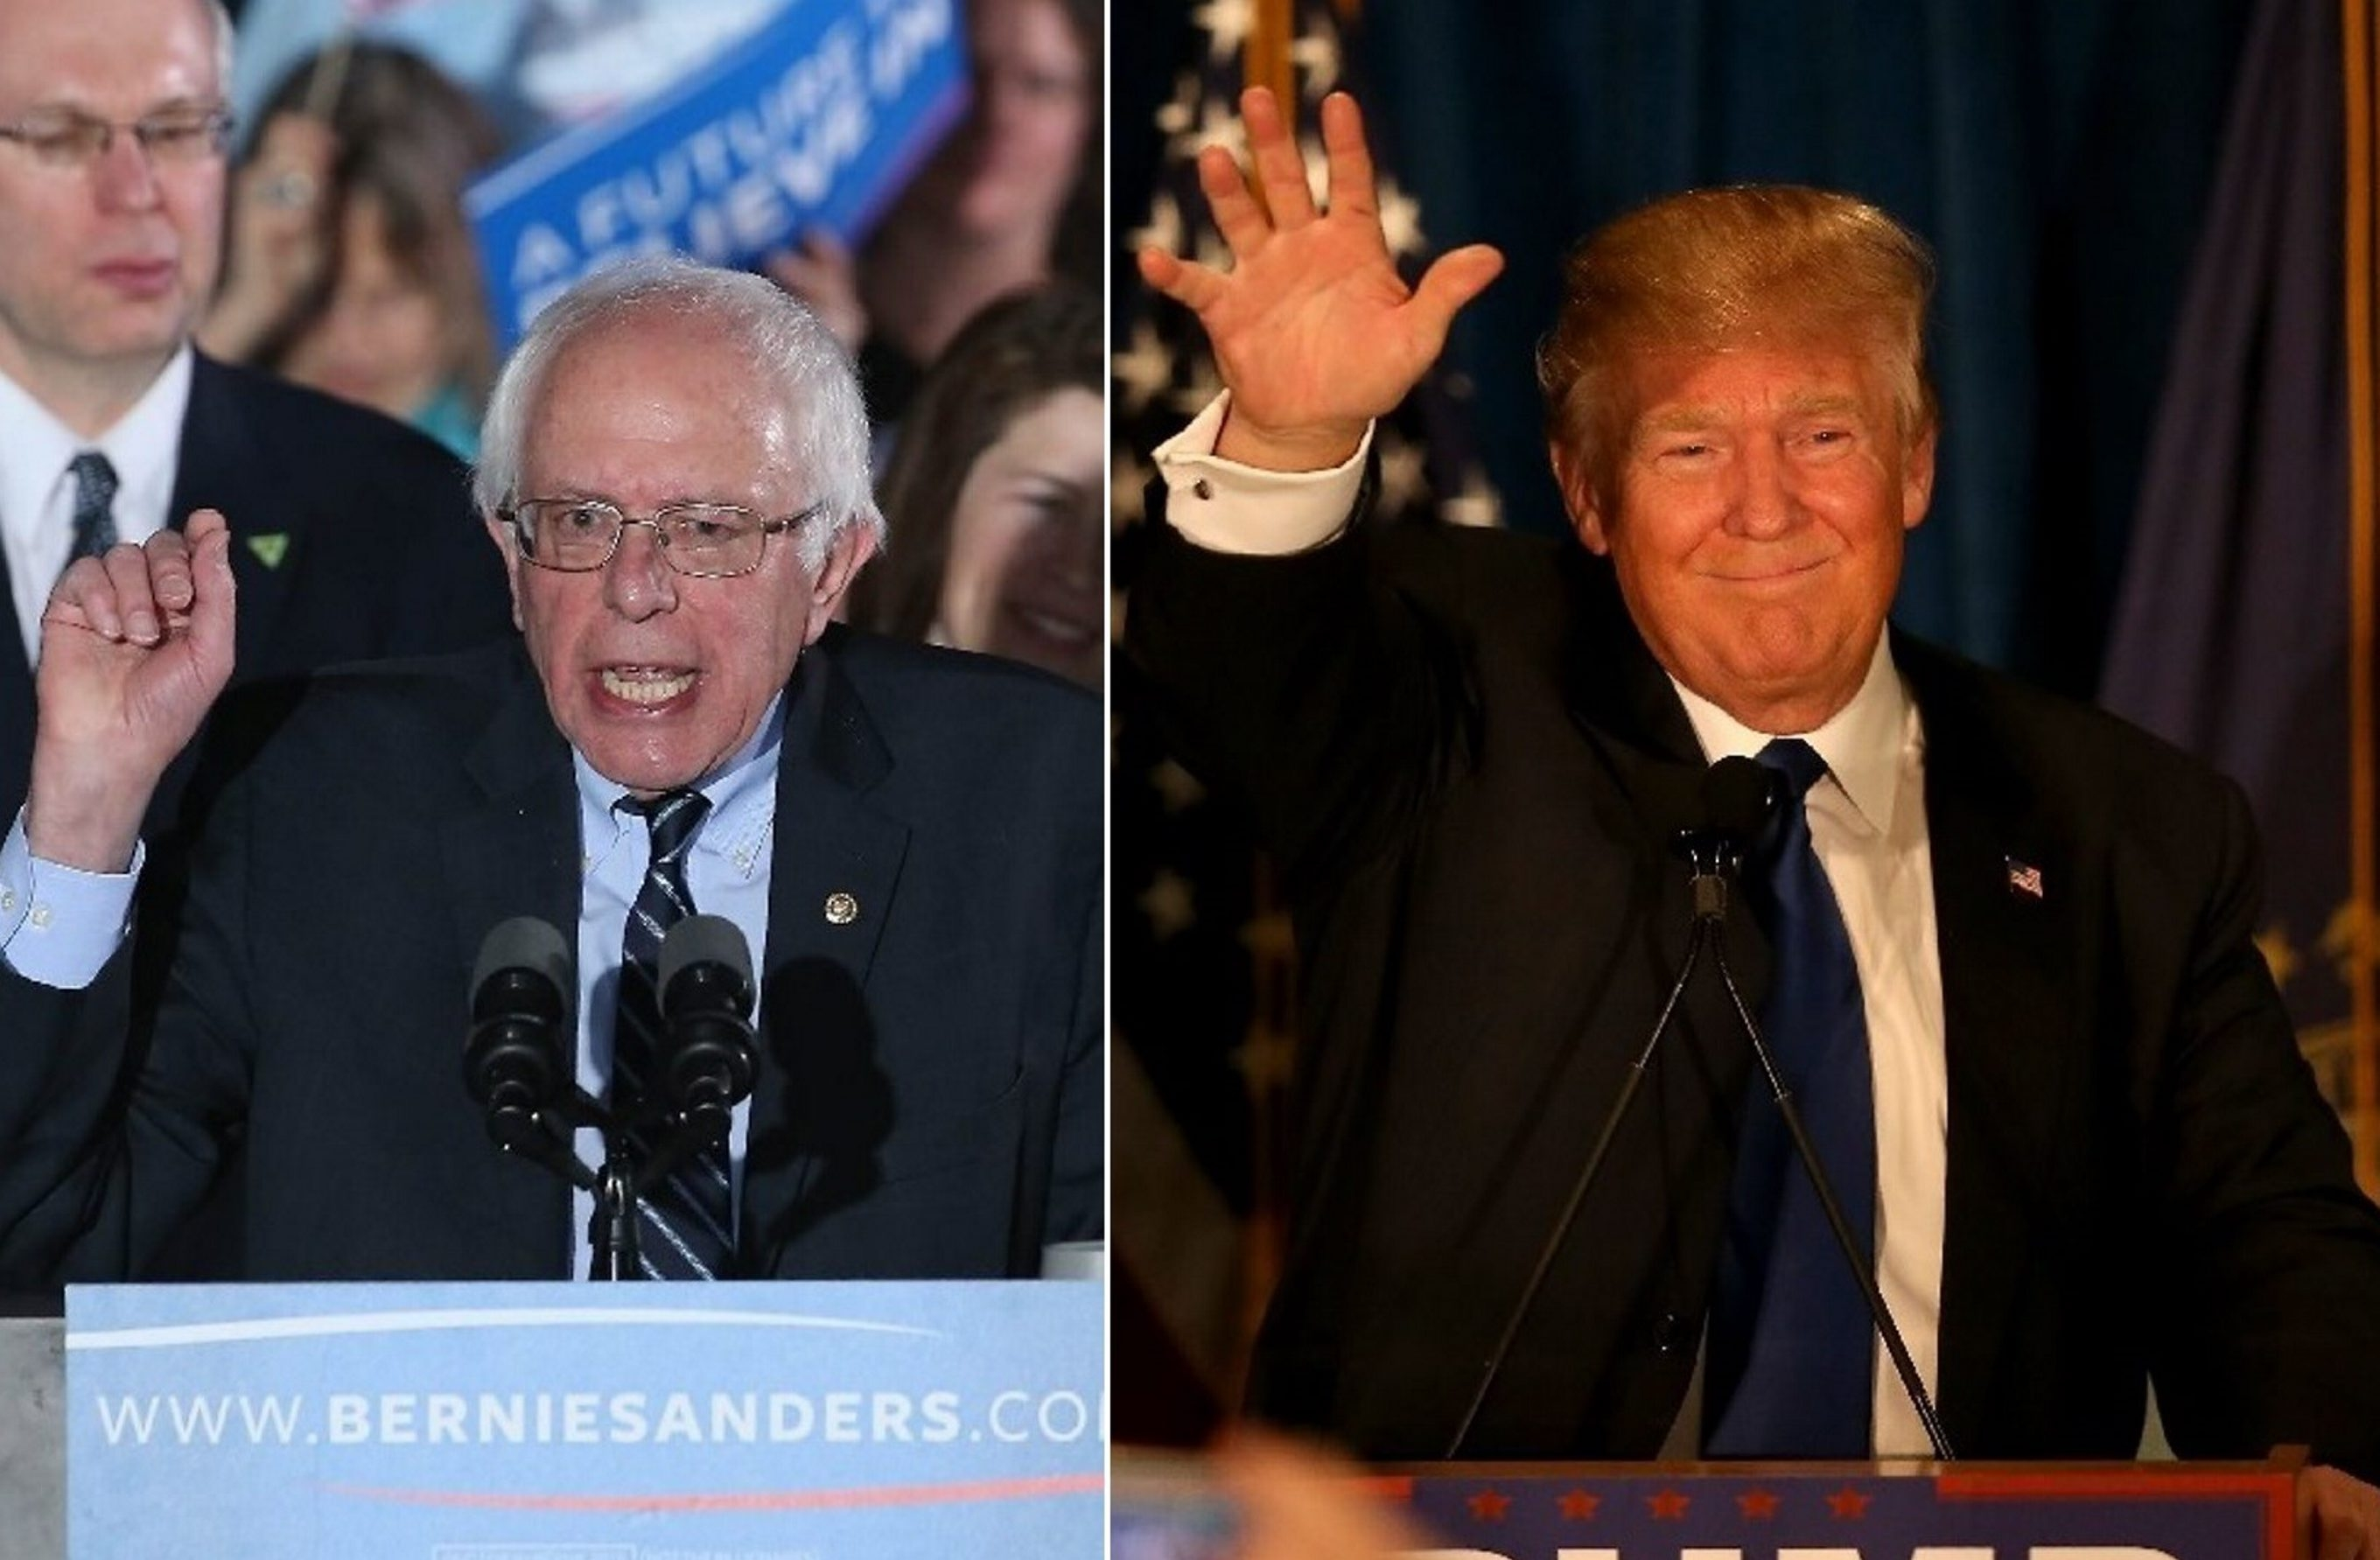 Bernie Sanders, left, tallied 32 percent of Erie County Facebook 'likes,' while Donald Trump, right, got 28 percent. Democrats and Republicans vote in presidential primaries in New York State on April 19.